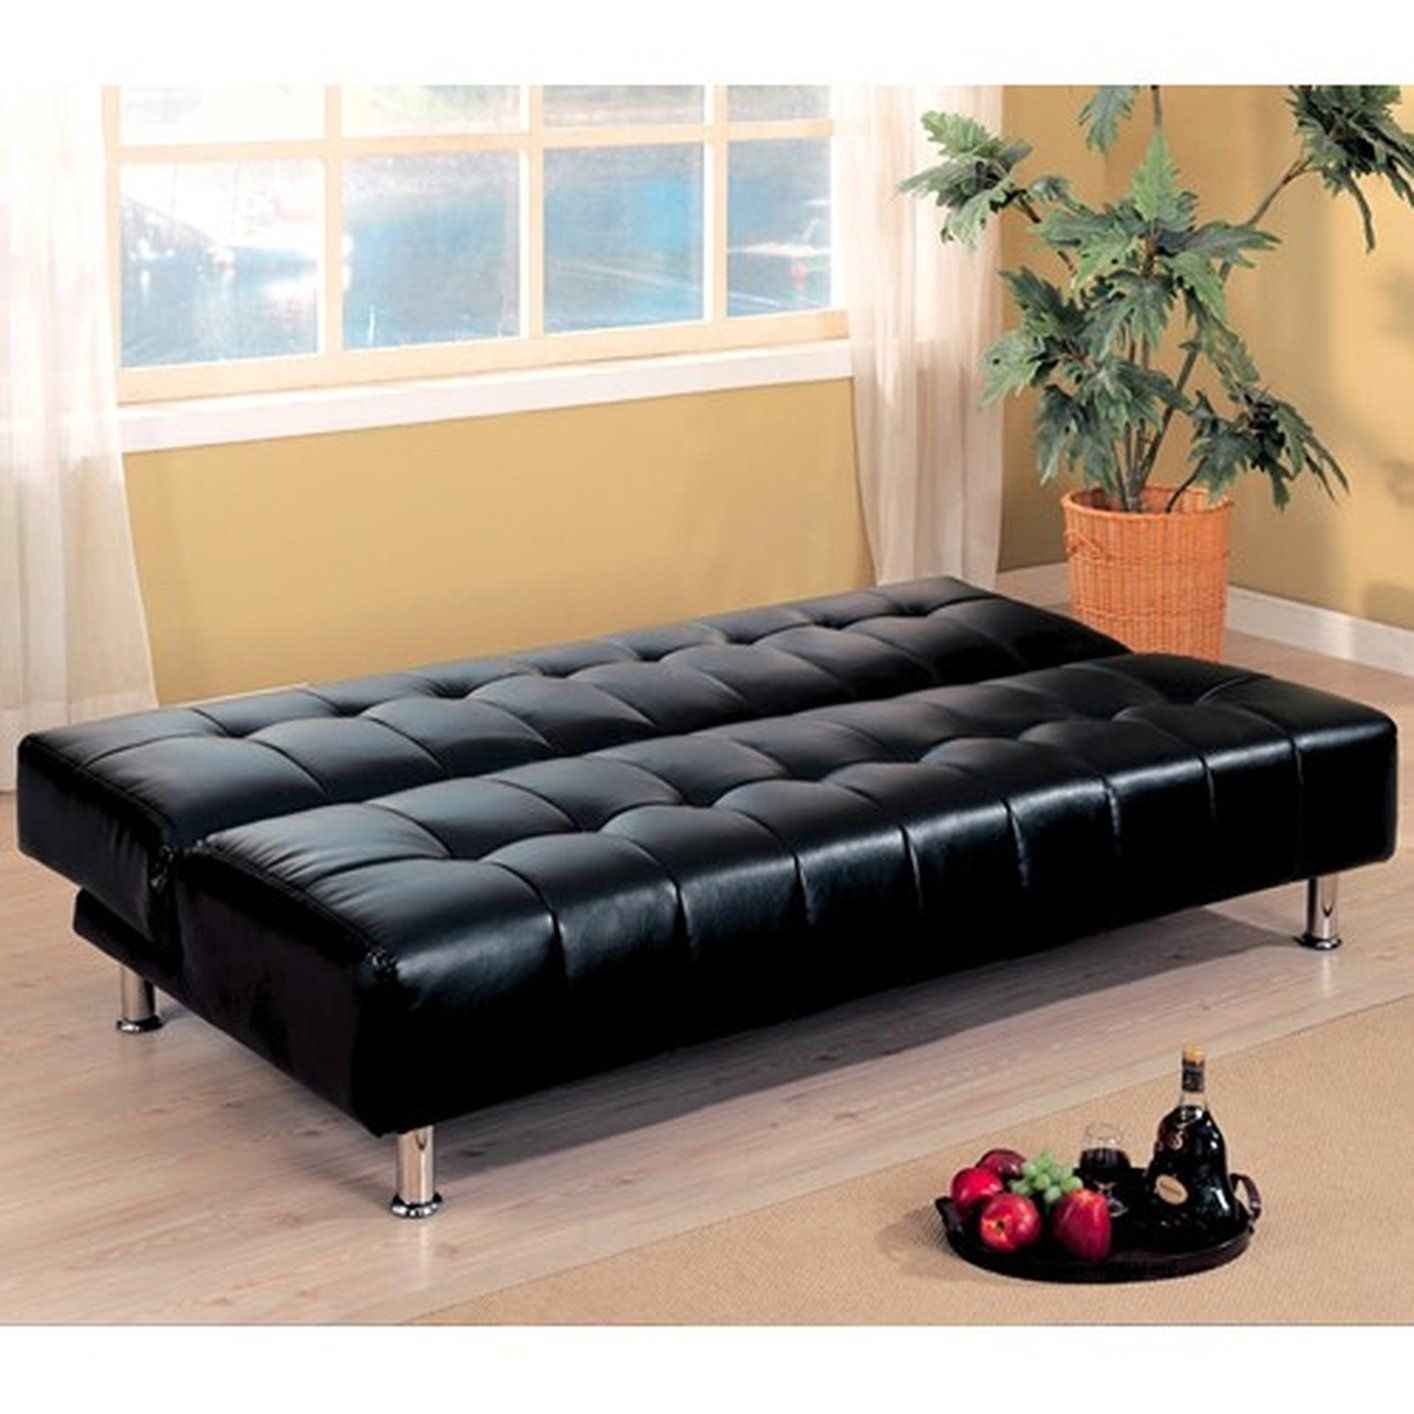 Best 25 Black leather sofa bed ideas on Pinterest